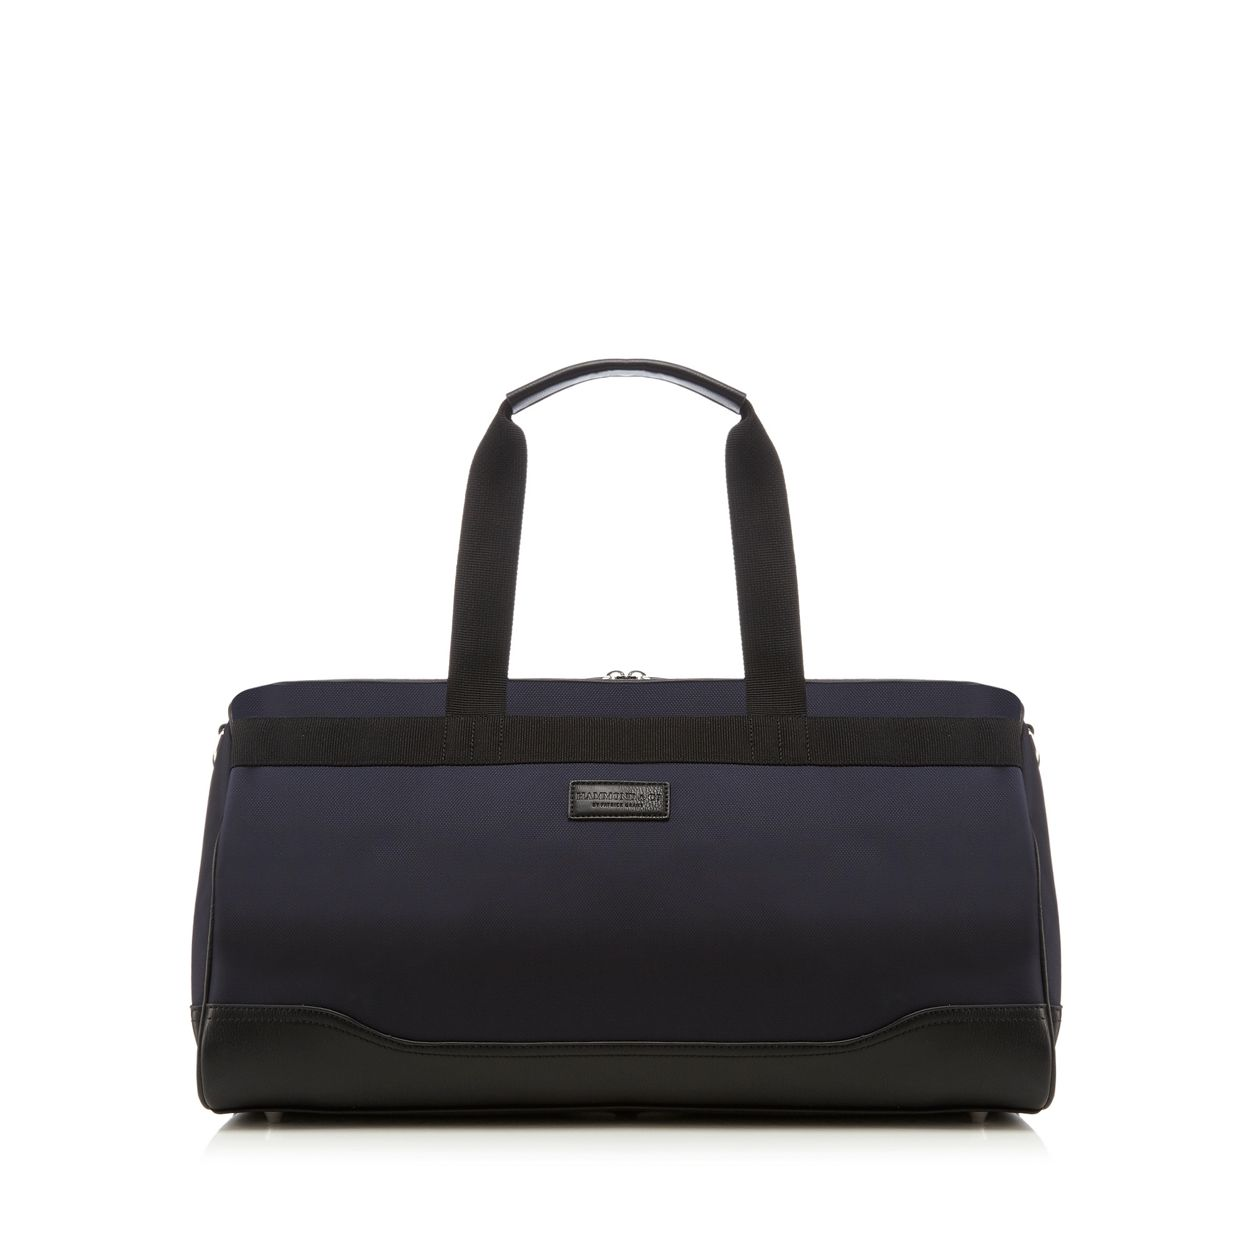 Hammond & Co. by Patrick Grant Navy holdall bag